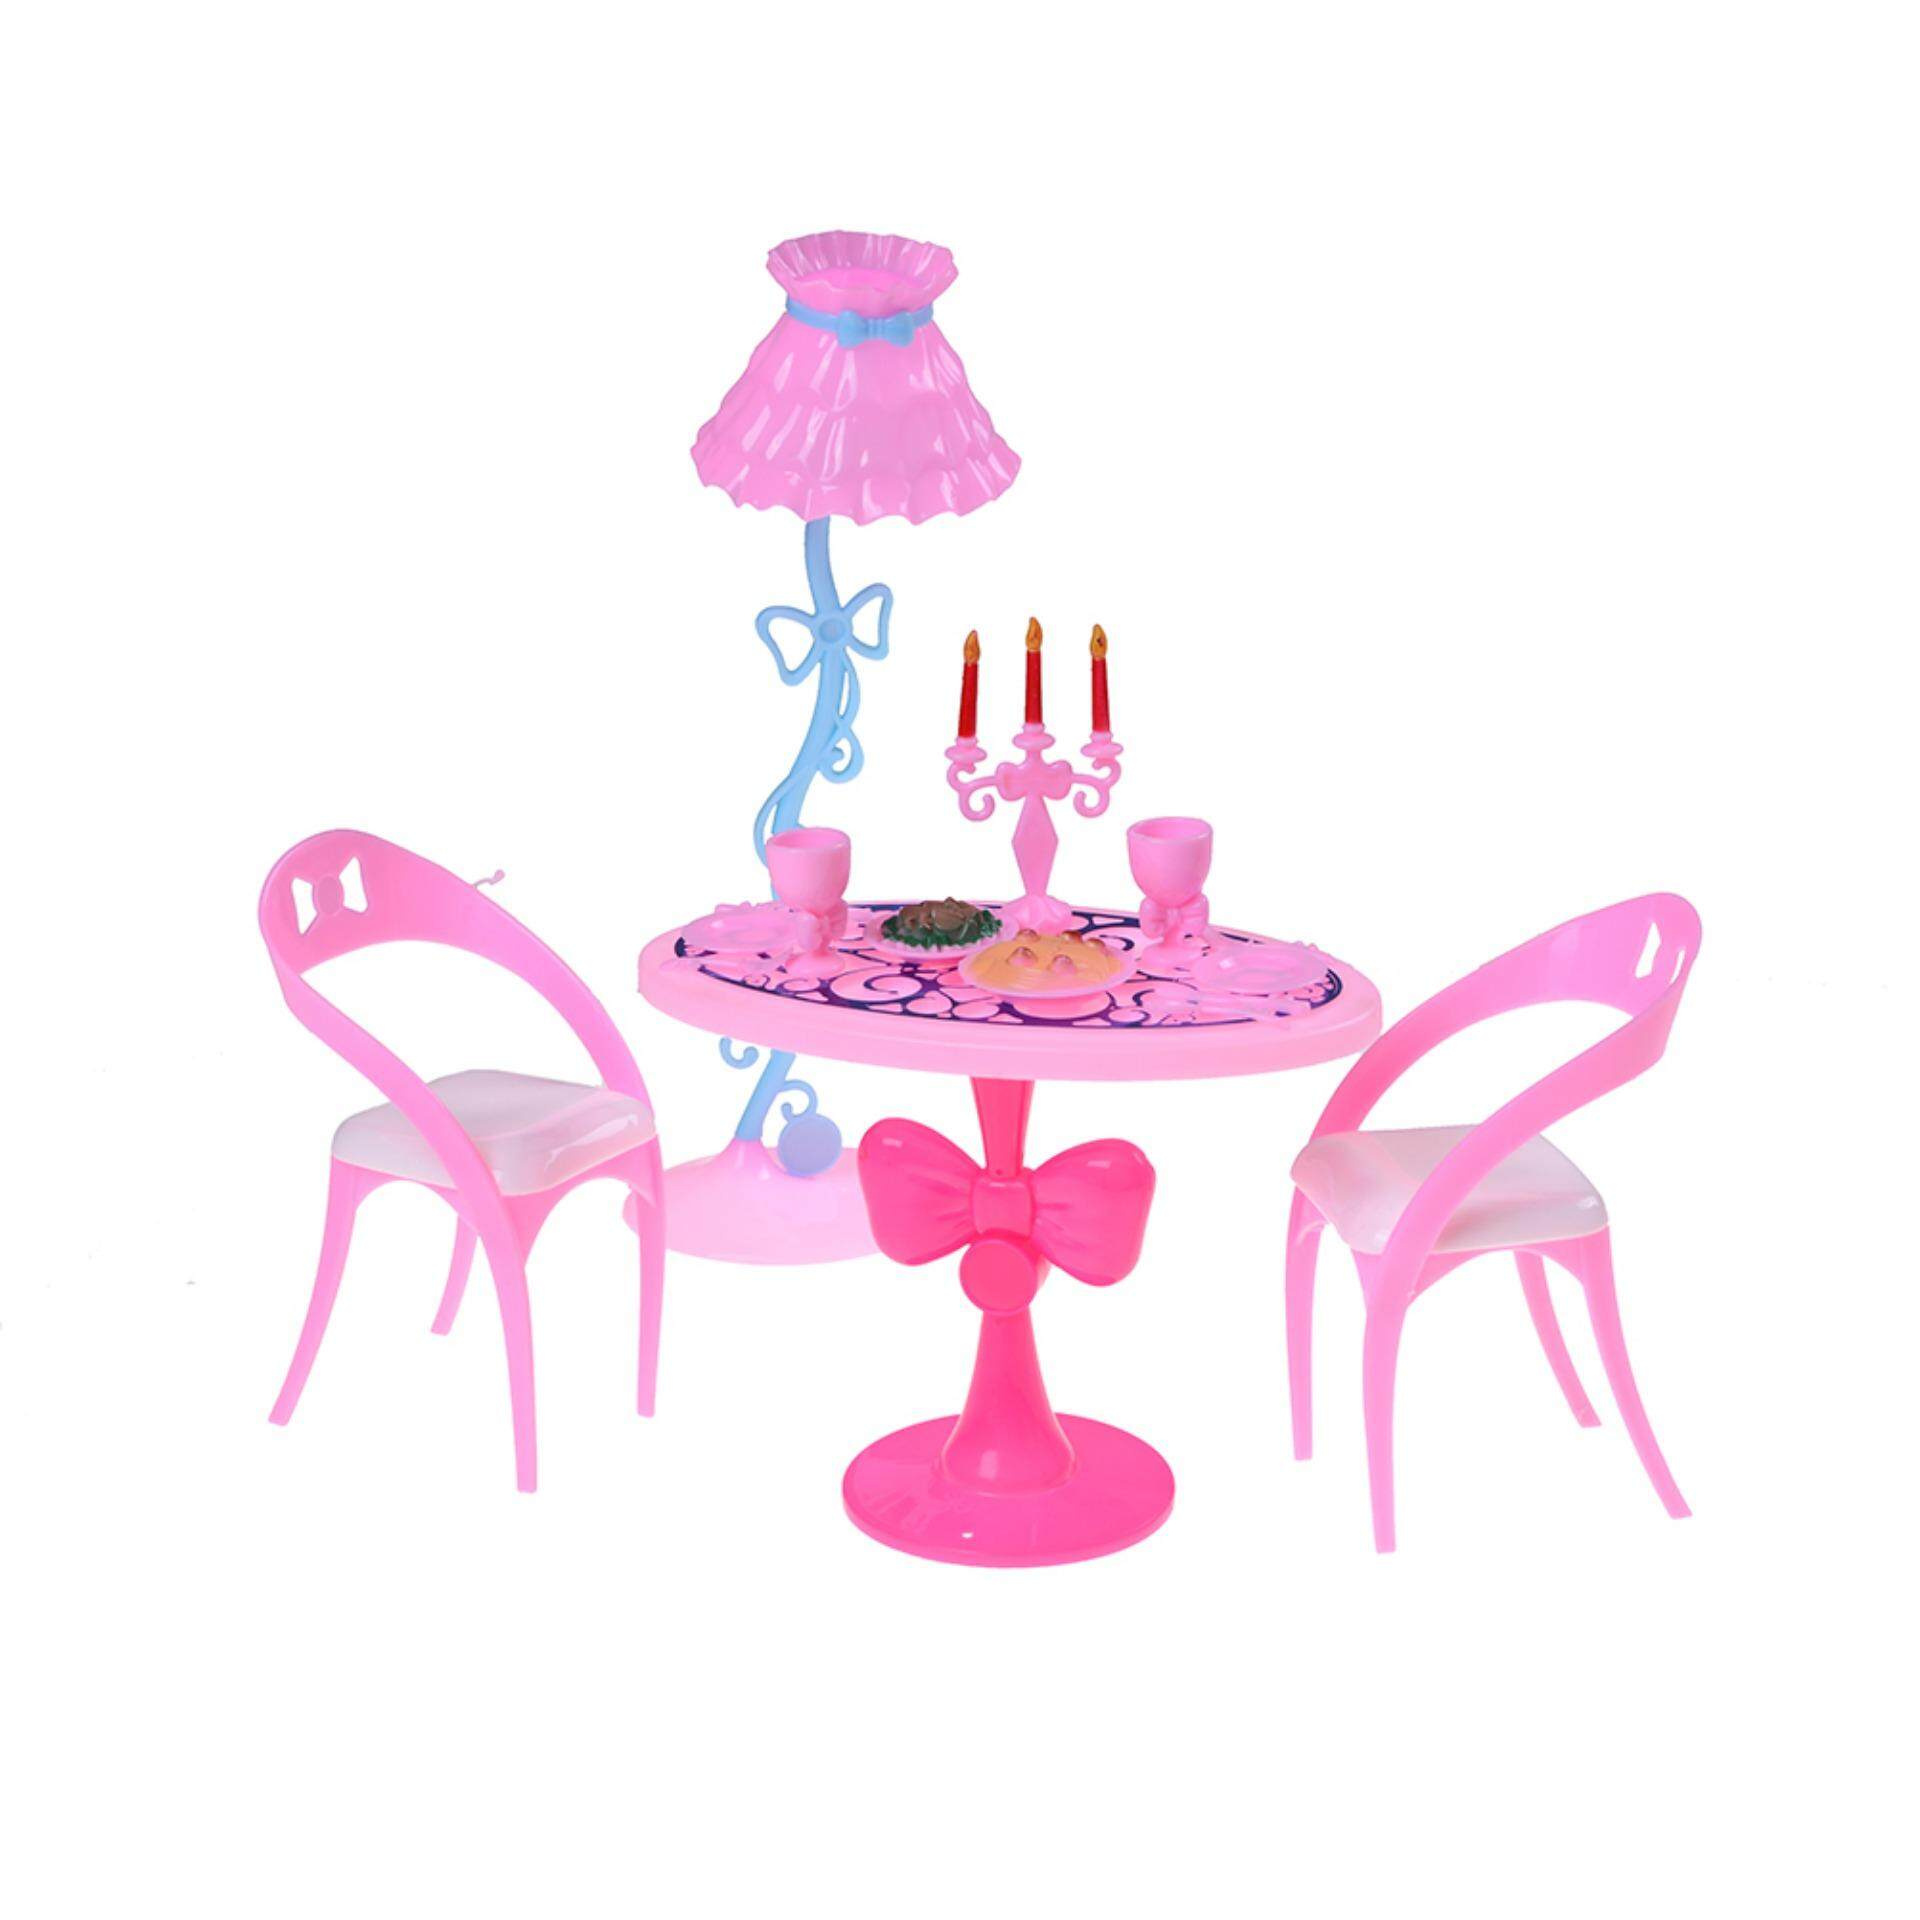 1 Set=17PCs Vintage Dining Furniture Table Chairs Toys For Doll Furniture Sets Wholesale Pink One Size - intl